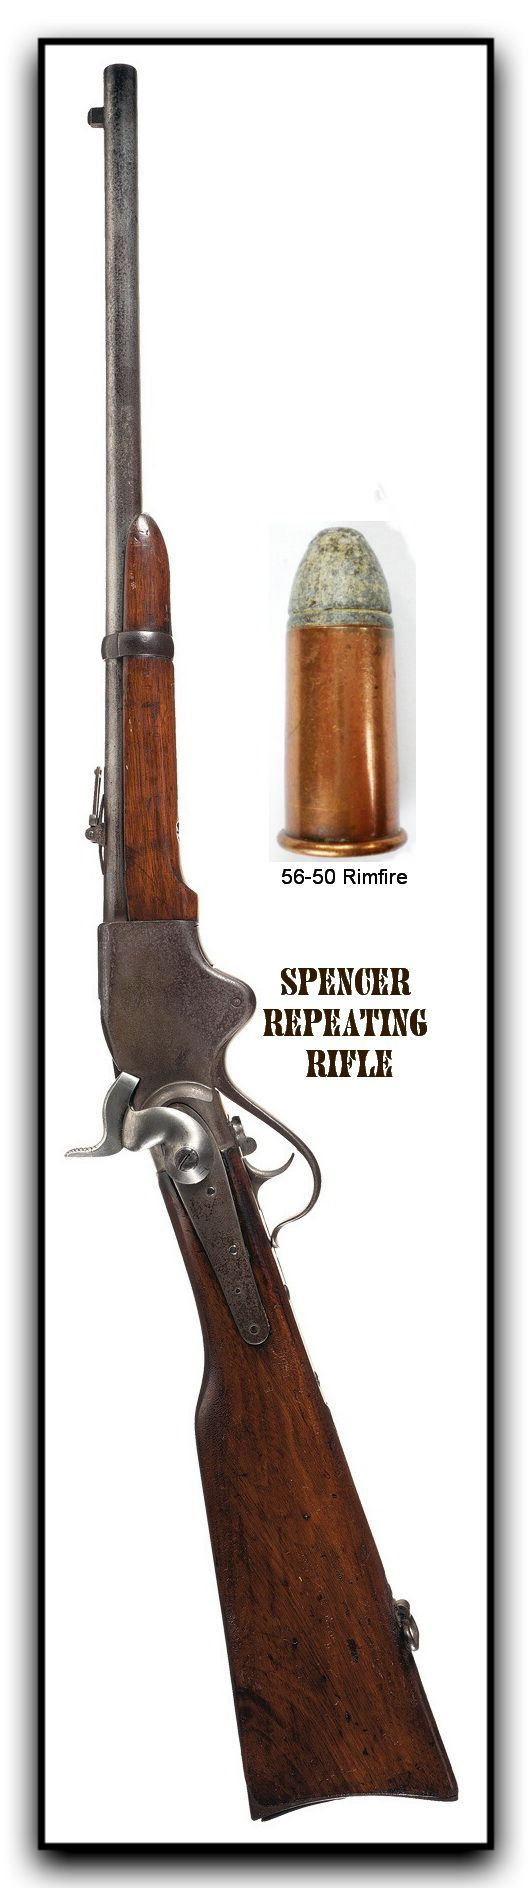 Spencer repeating rifles were designed in 1860